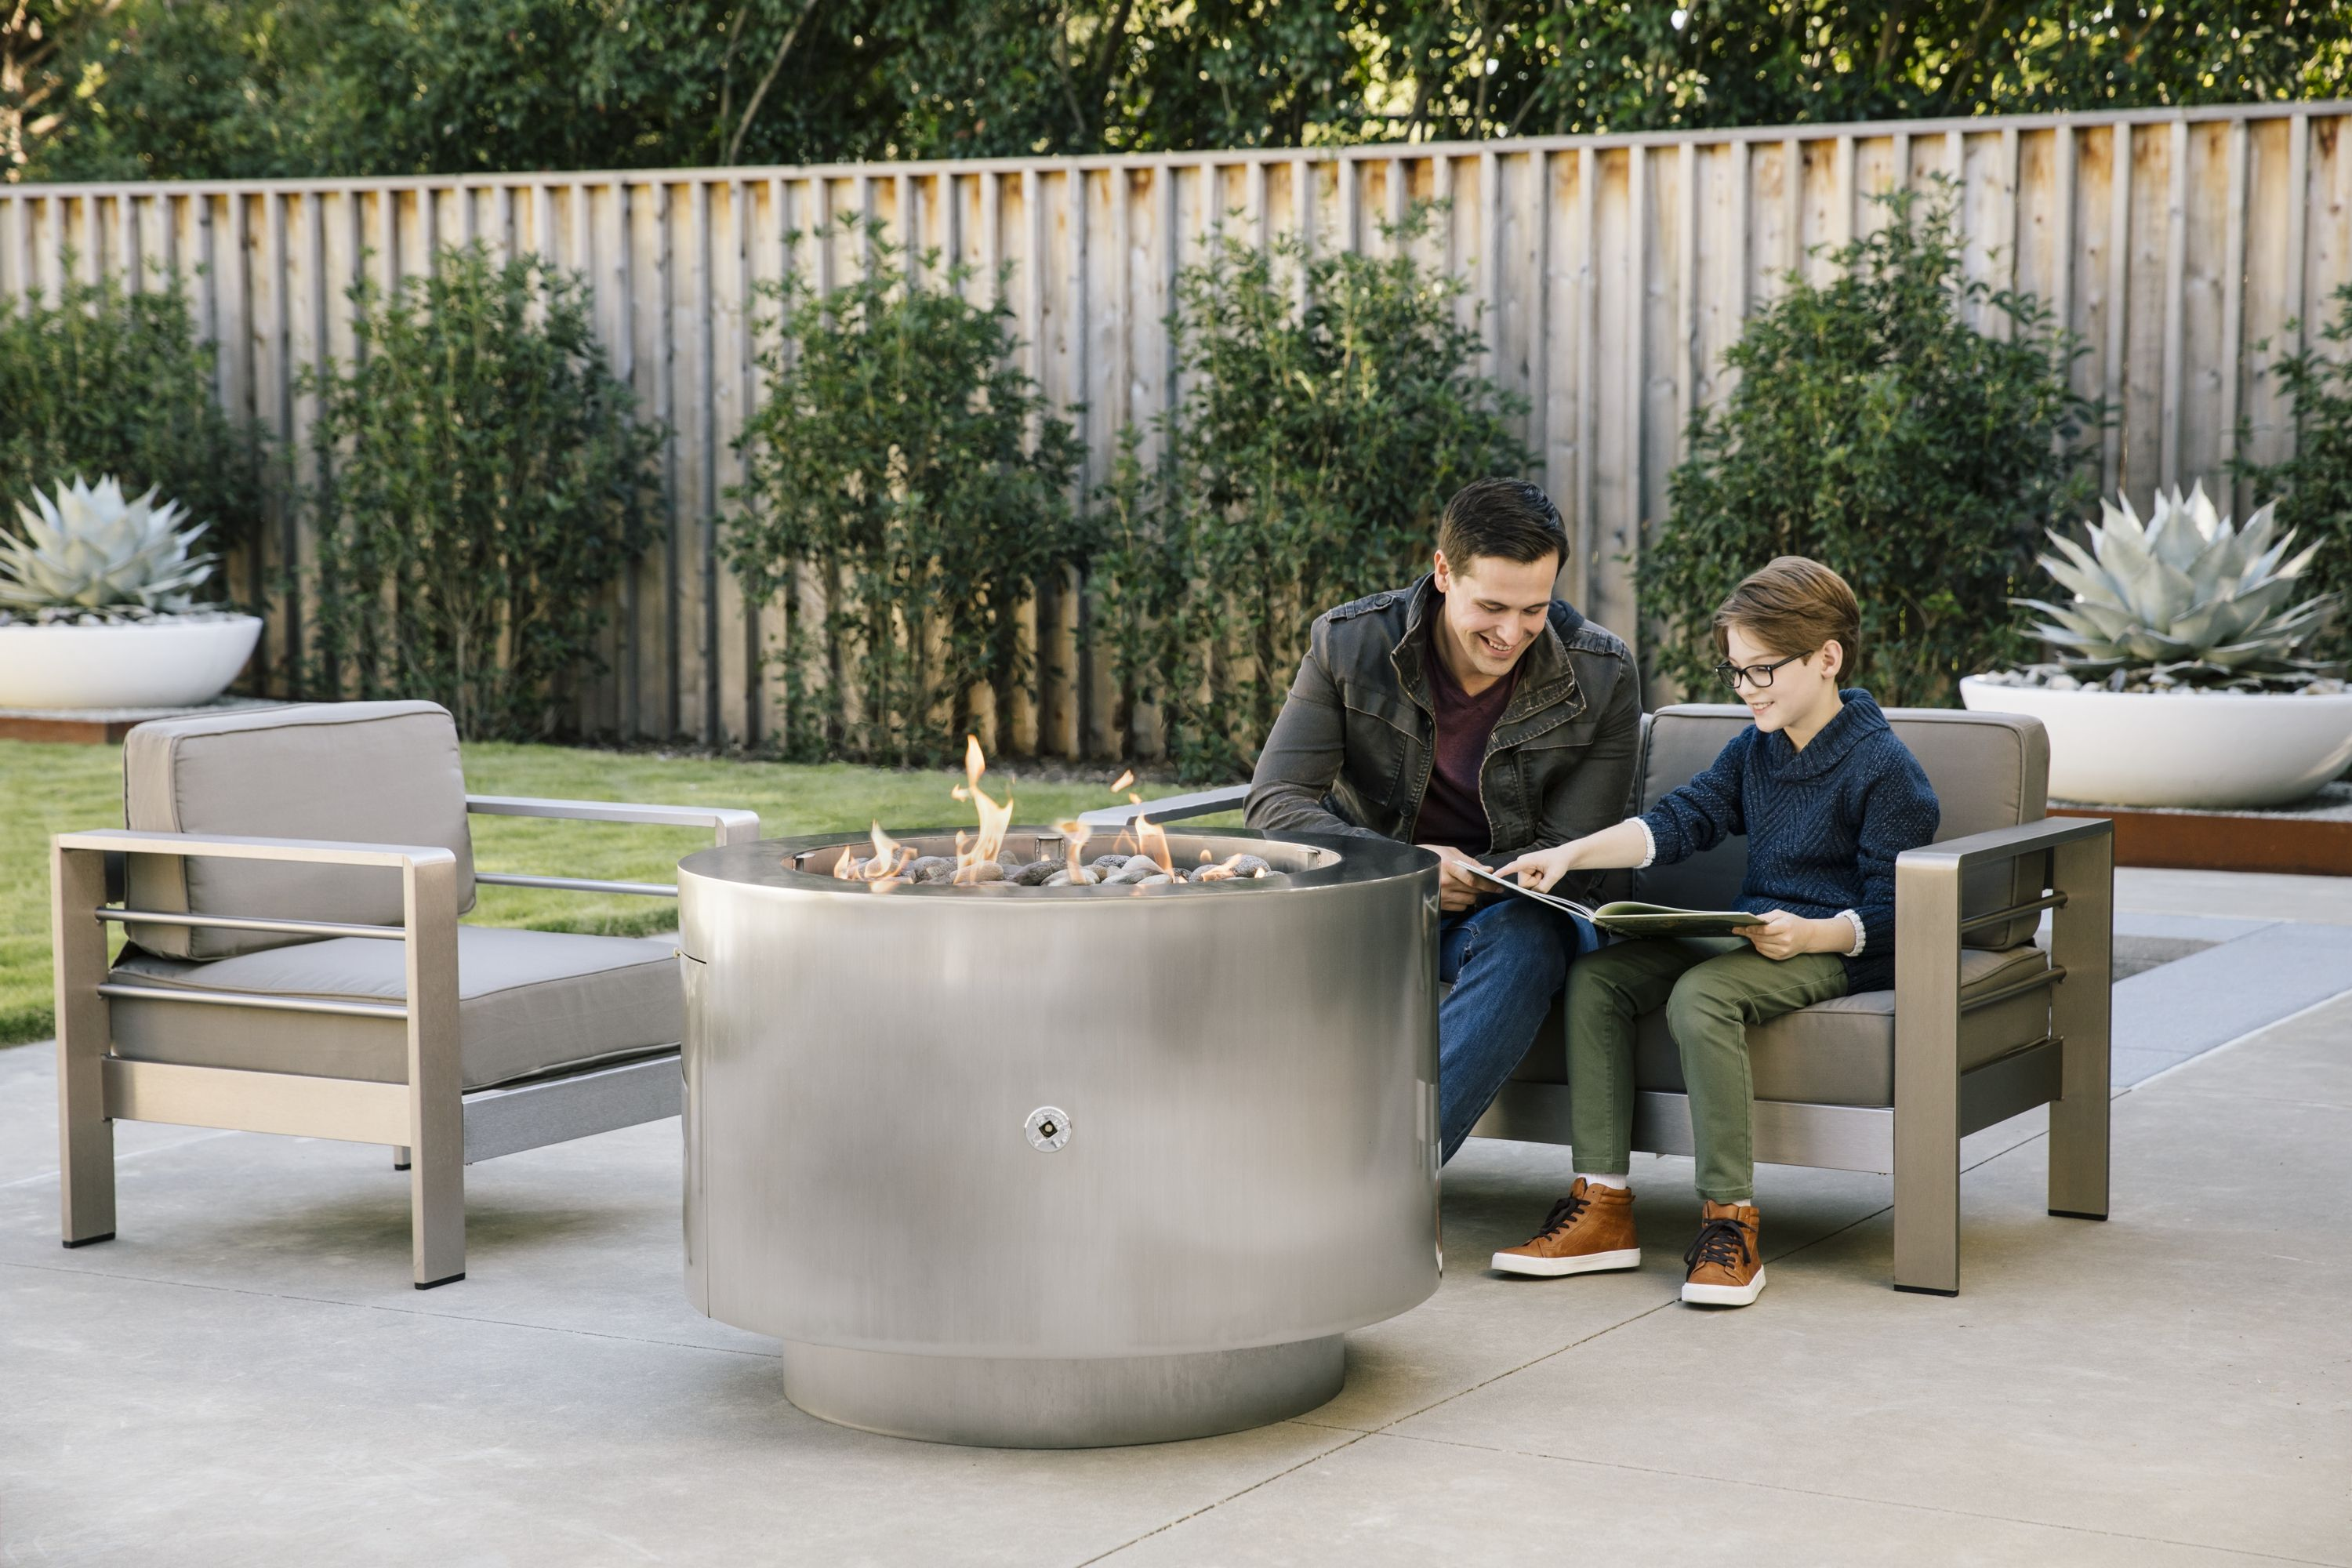 inch round stainless steel fire pit fuel options are natural gas